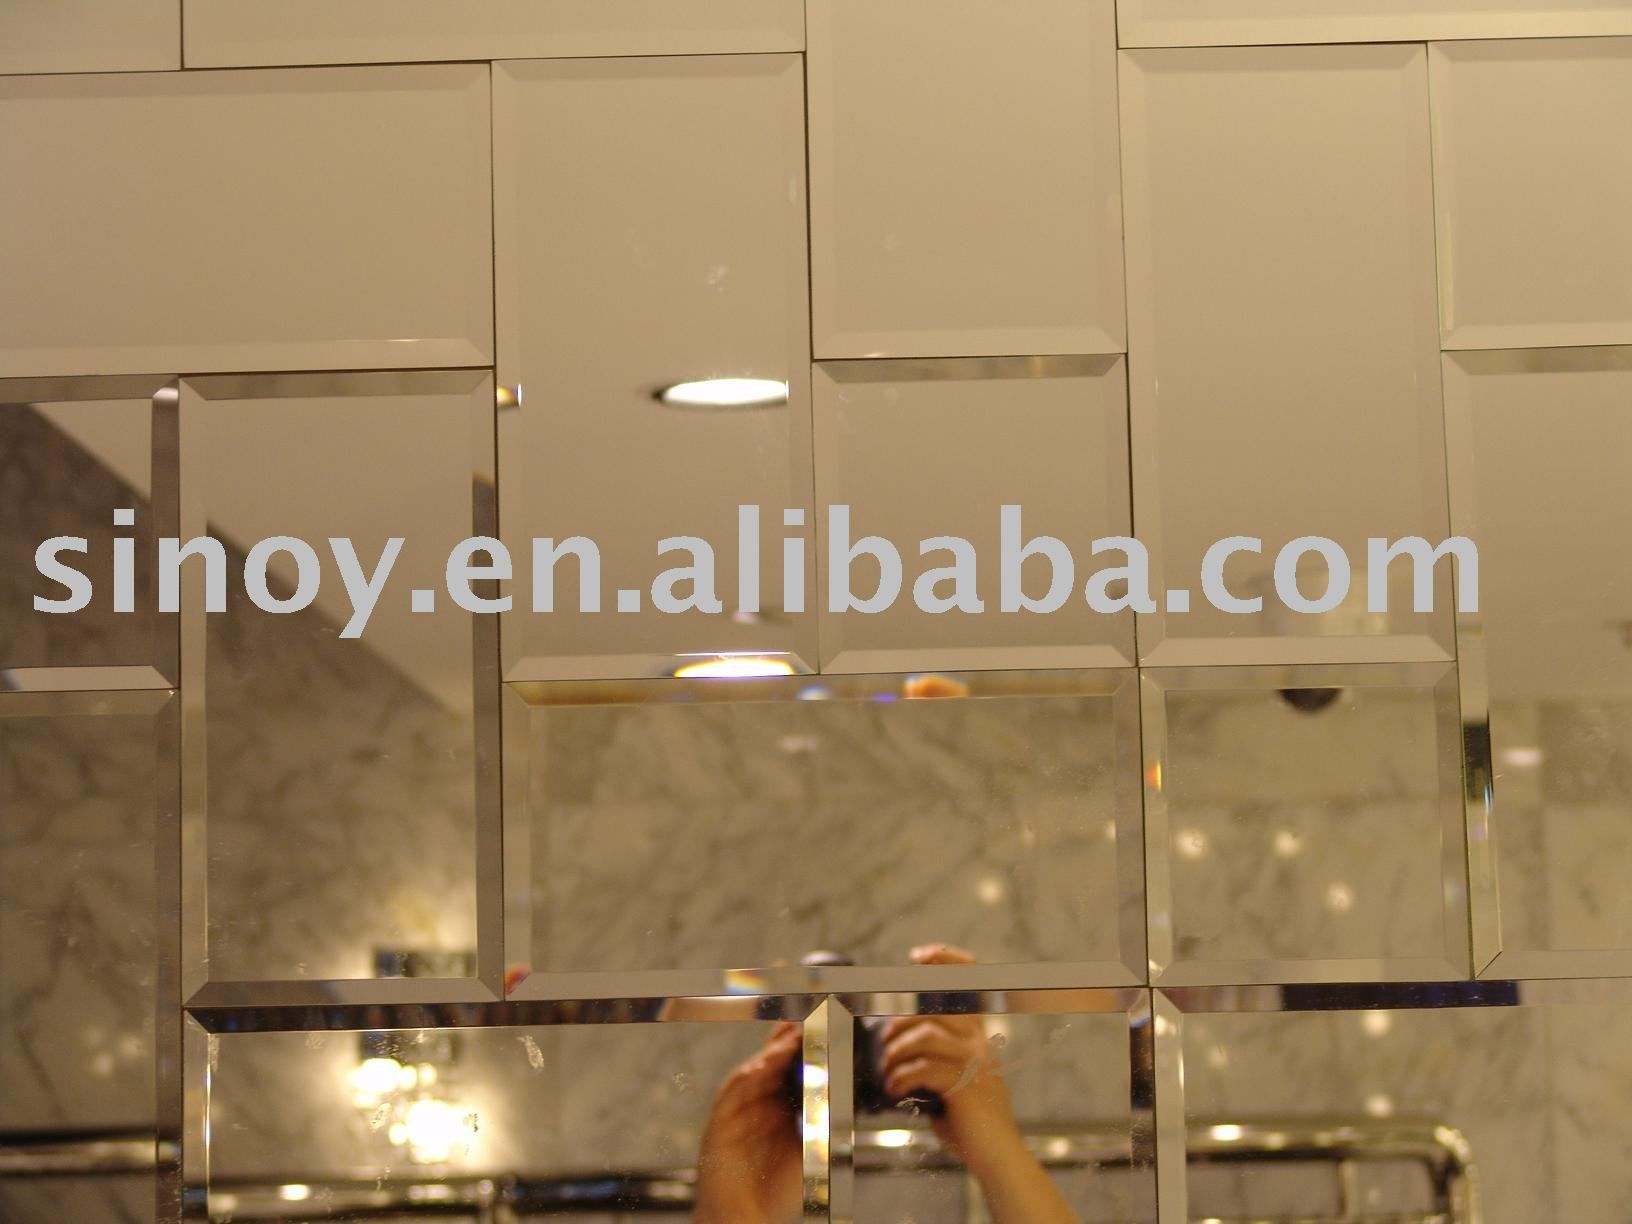 Beveled Bathroom Mirror Tiles 125 125mm Find Complete Details About Beveled Bathroom Mirror Tiles 12 Beveled Mirror Wall Mirror Wall Tiles Mirror Design Wall